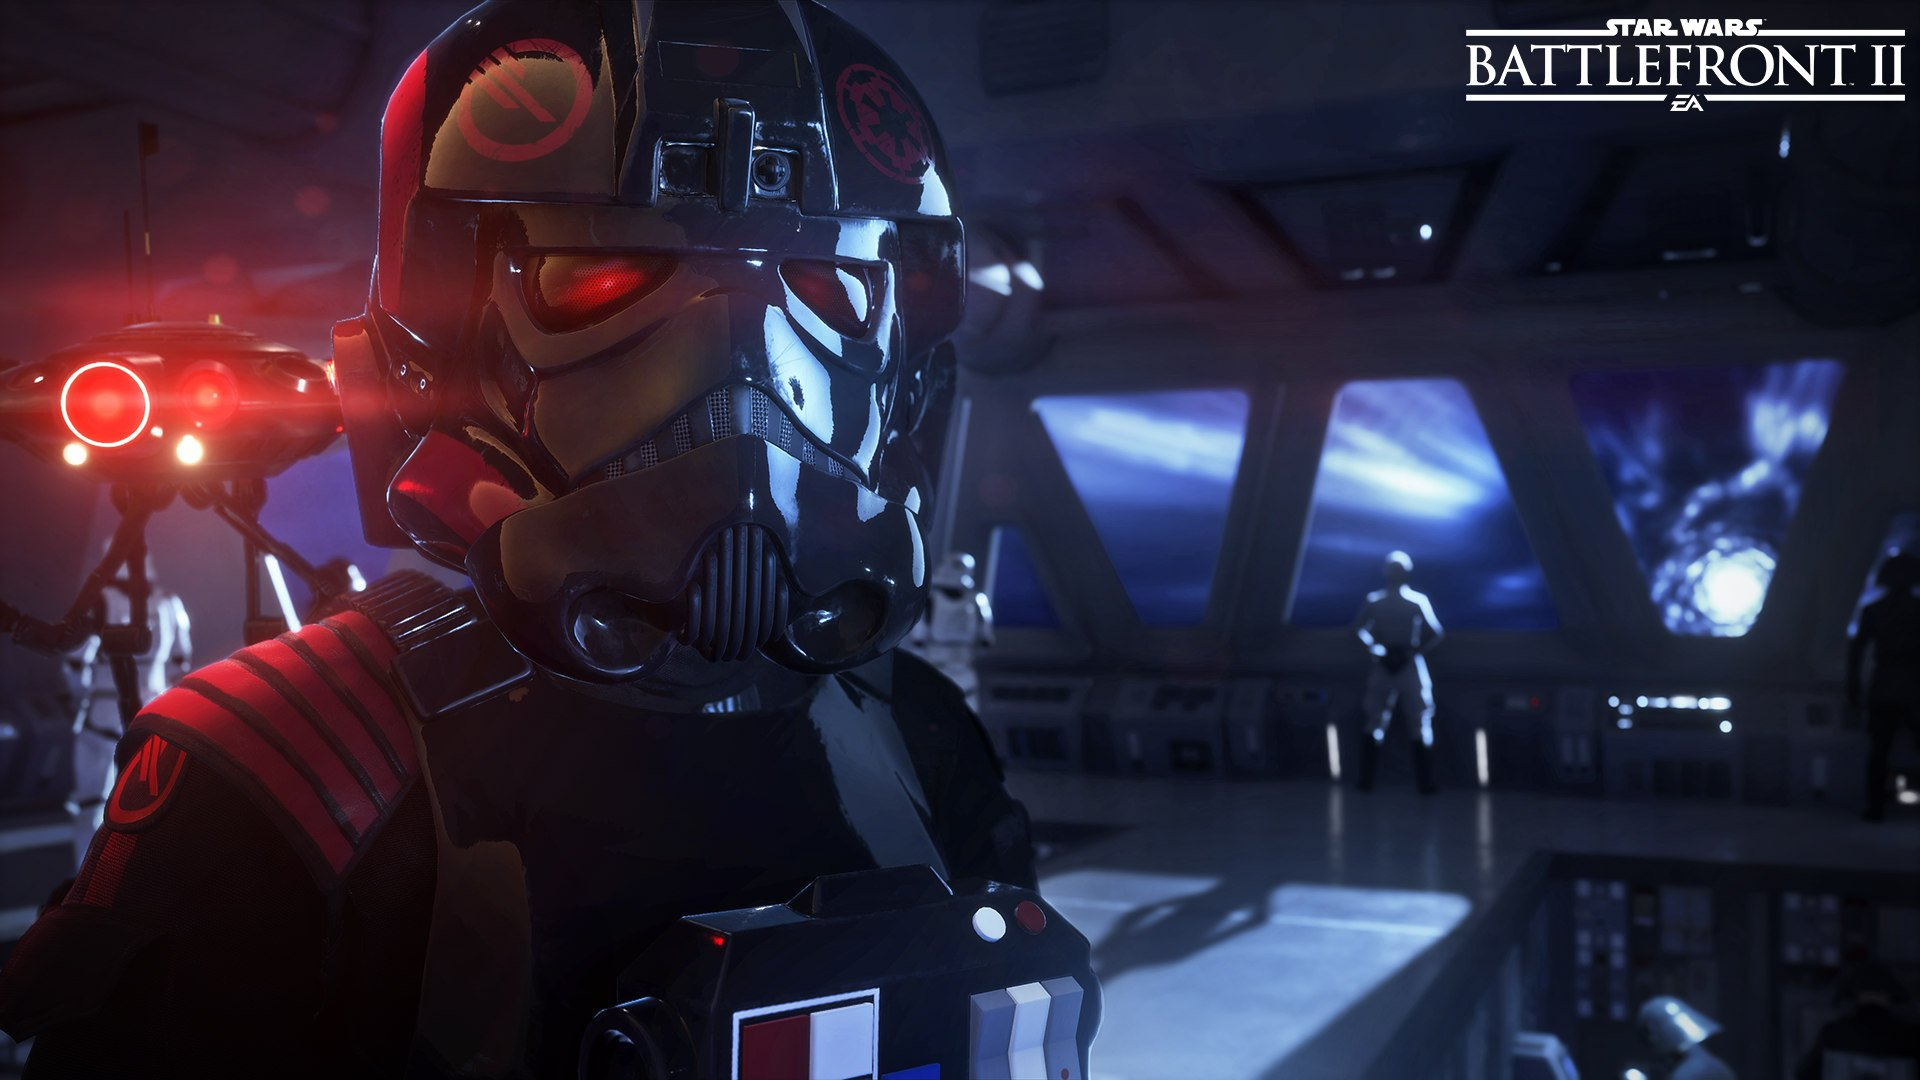 Star Wars Battlefront II Beta Hands-On Preview